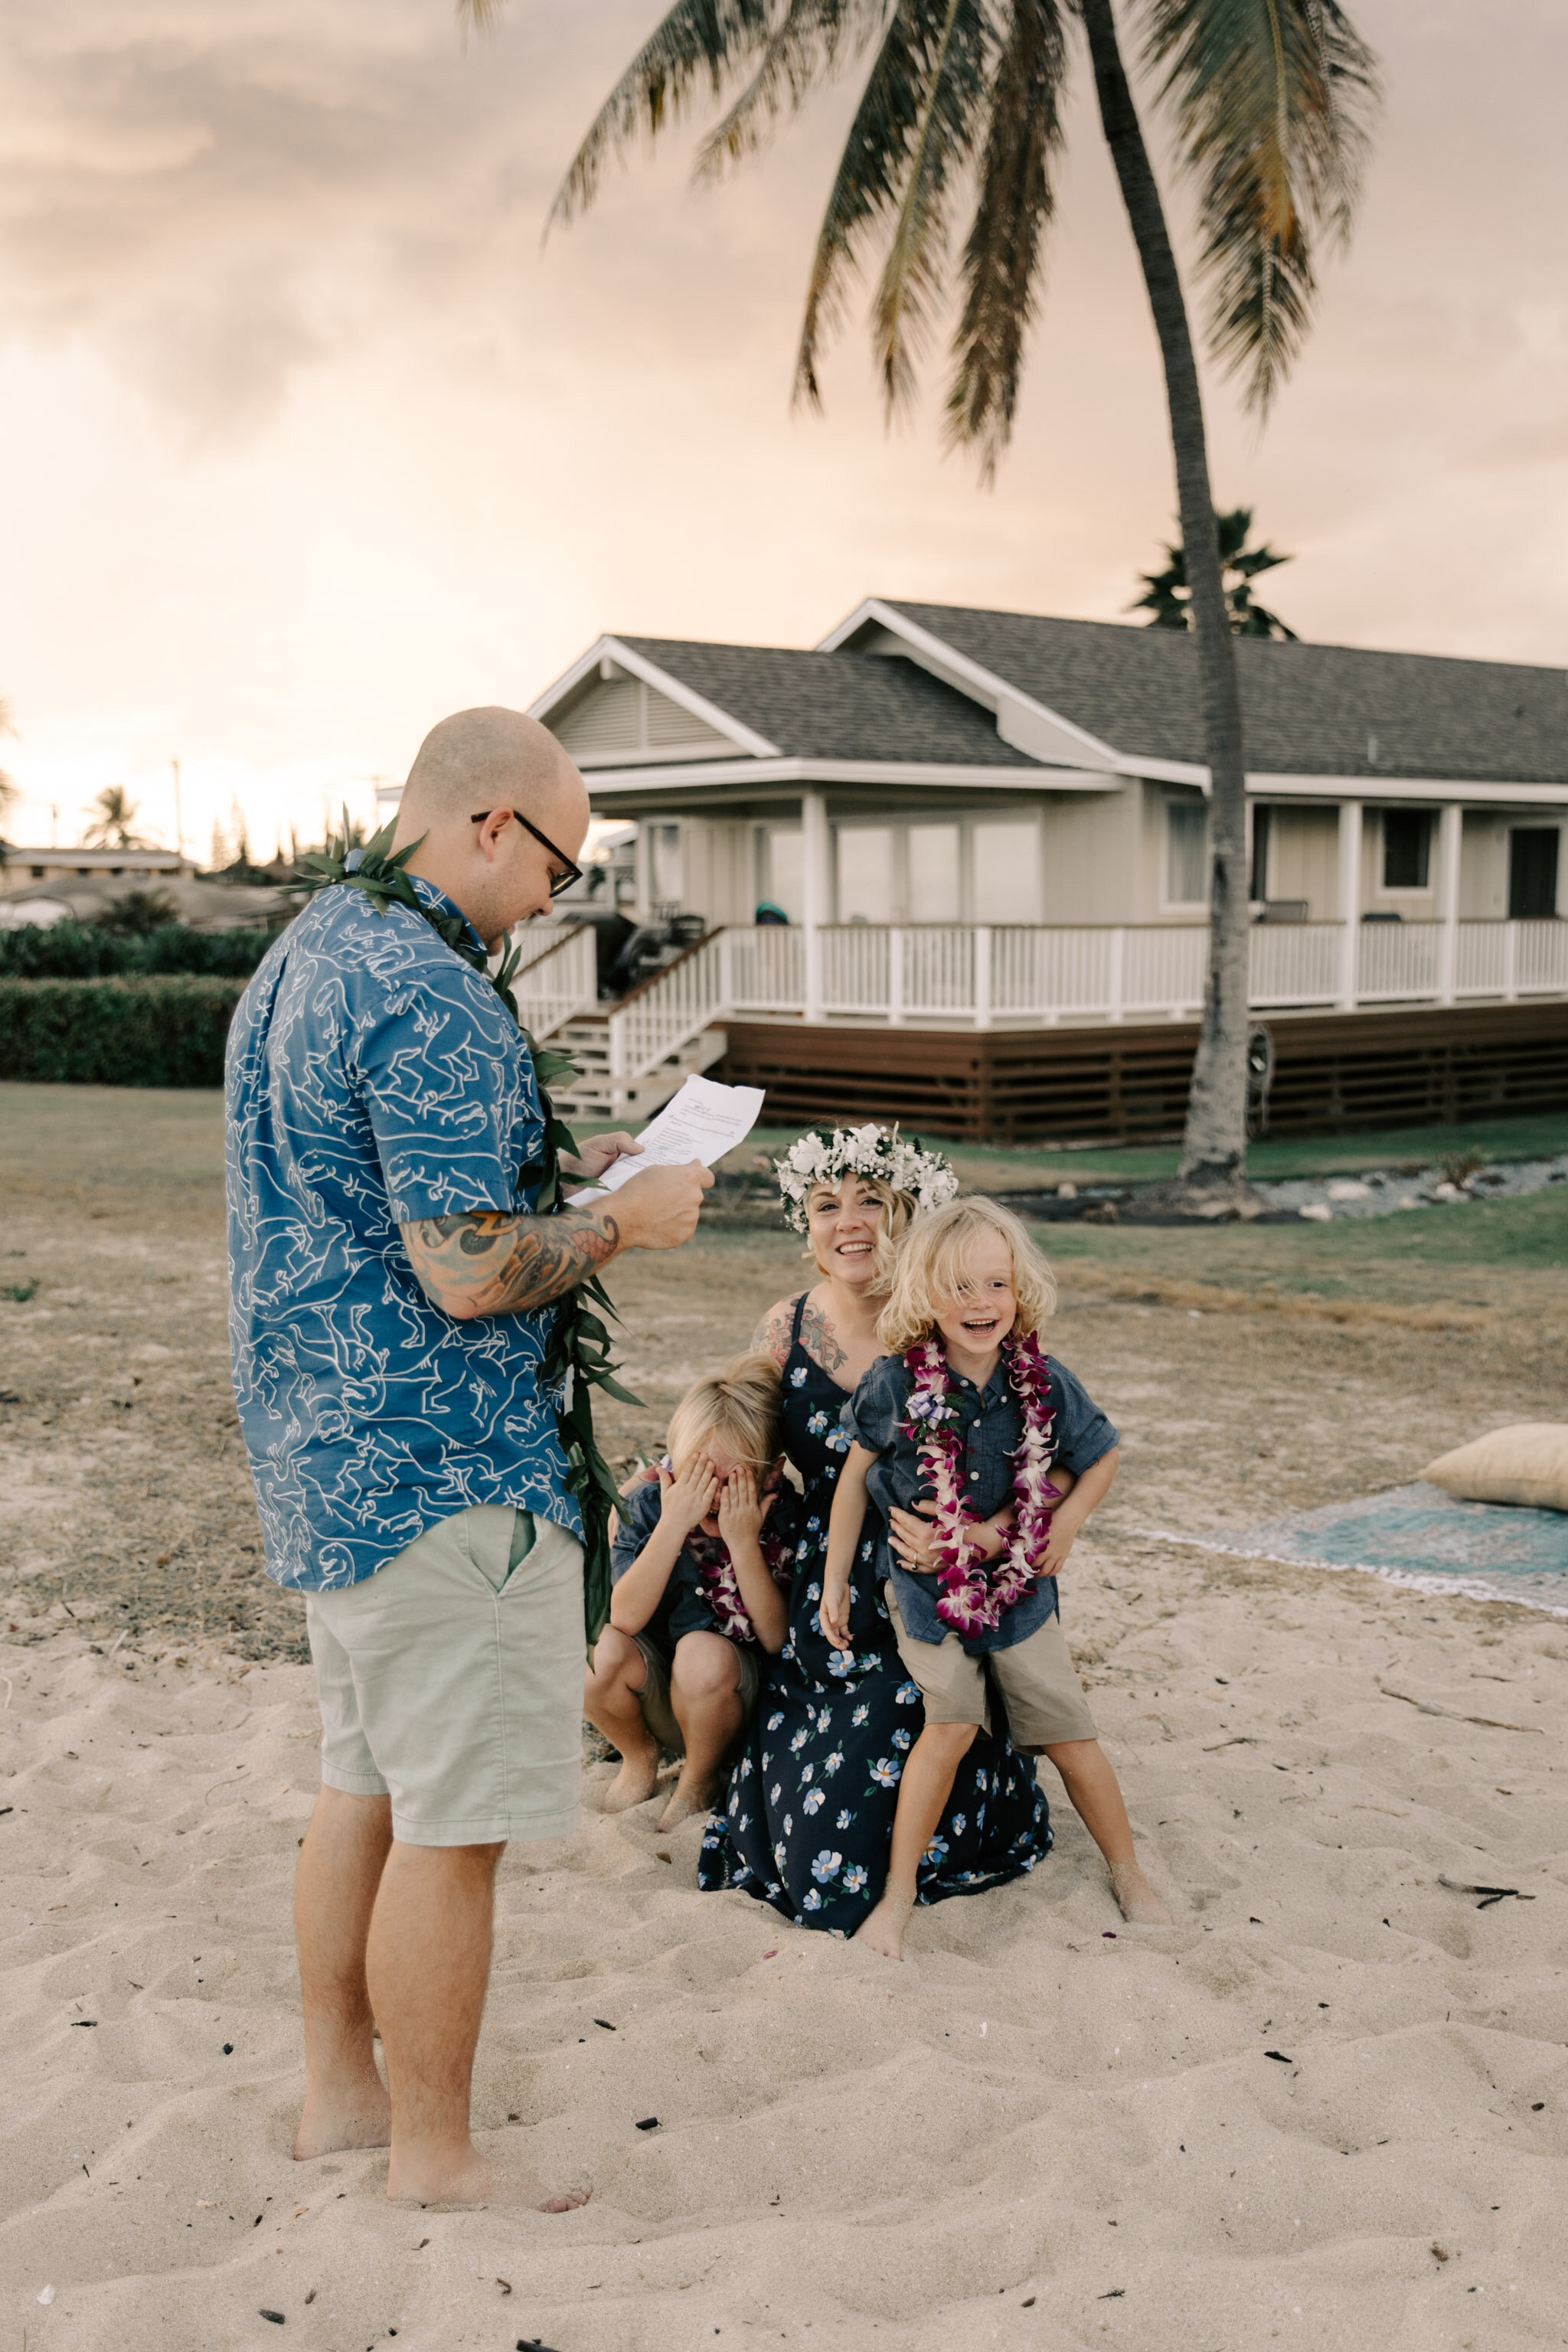 Reading vows to their children- Aloha Picnics Puuloa Beach Park Hawaii Vow Renewal By Oahu Wedding Photographer Desiree Leilani